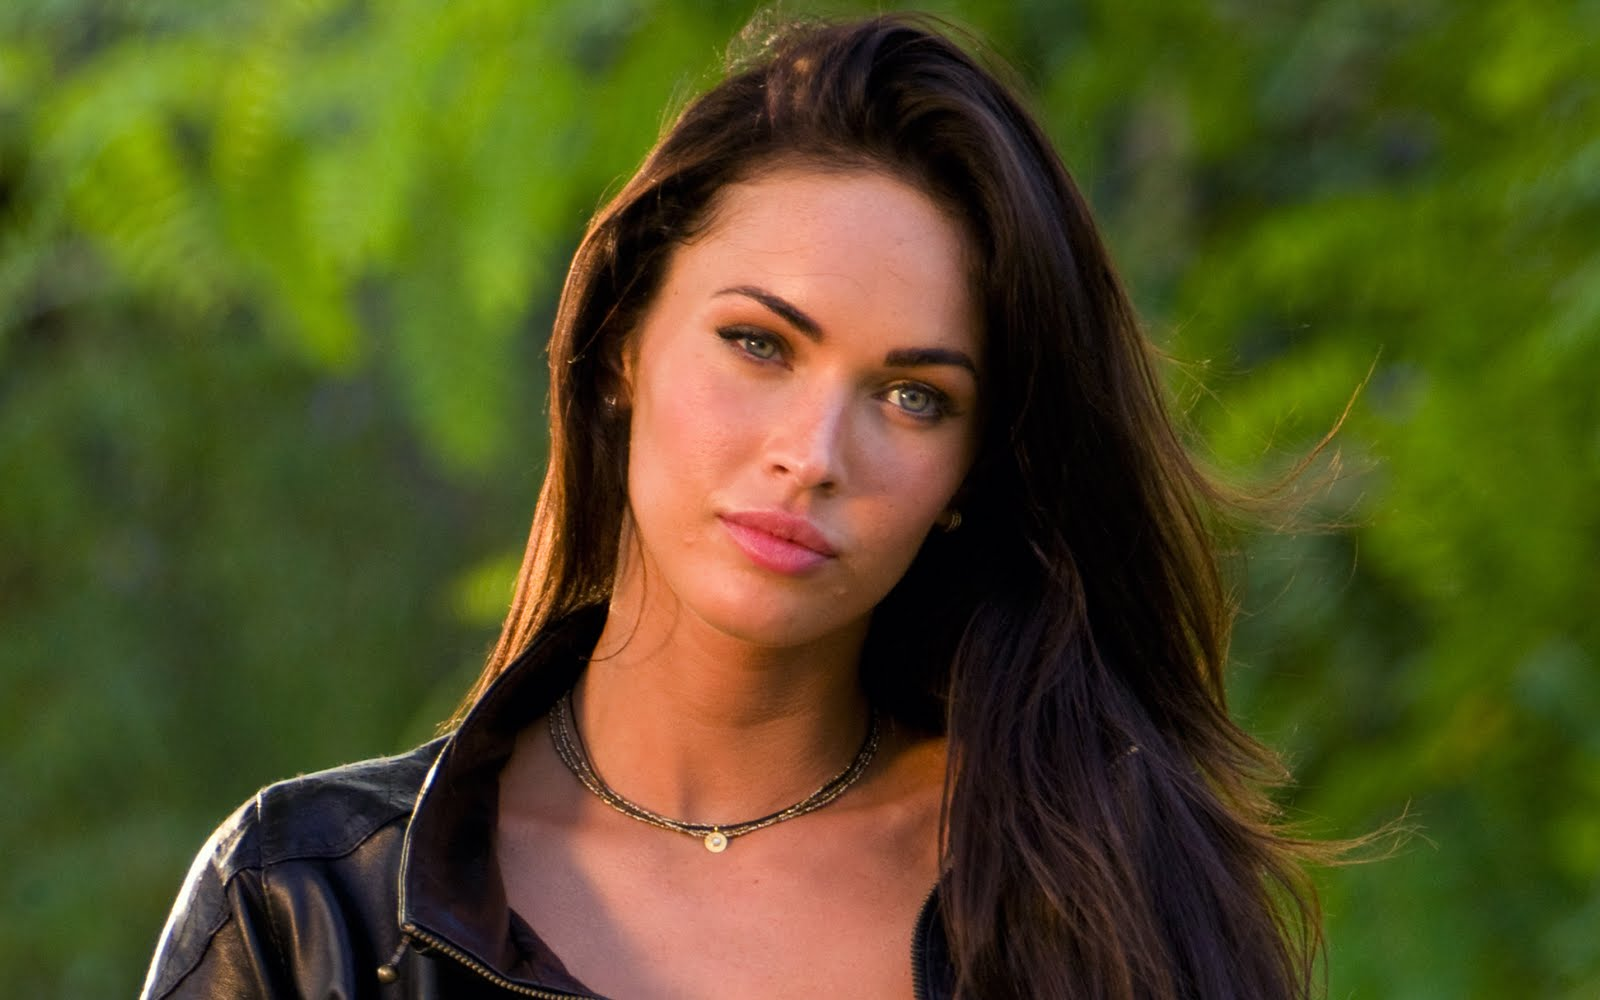 Unseen Girl Wallpaper Megan Fox Hot High Resolution Hd Wallpapers Free Download